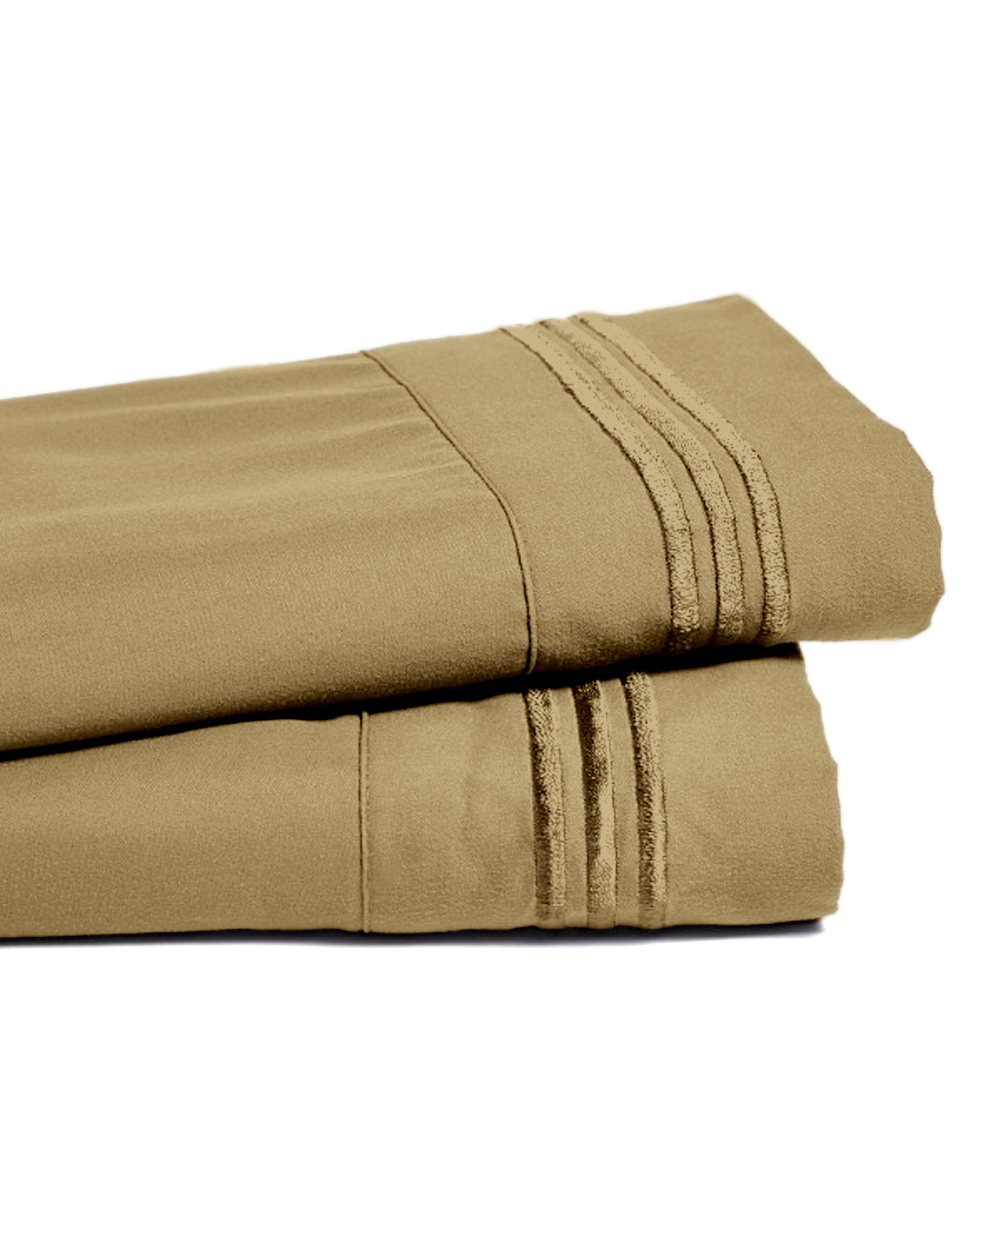 Deep Pocket Bamboo Bed Sheet - Luxury 2200 Embroidered Wrinkle, Fade and Stain Resistant Sheets - Khaki King Size